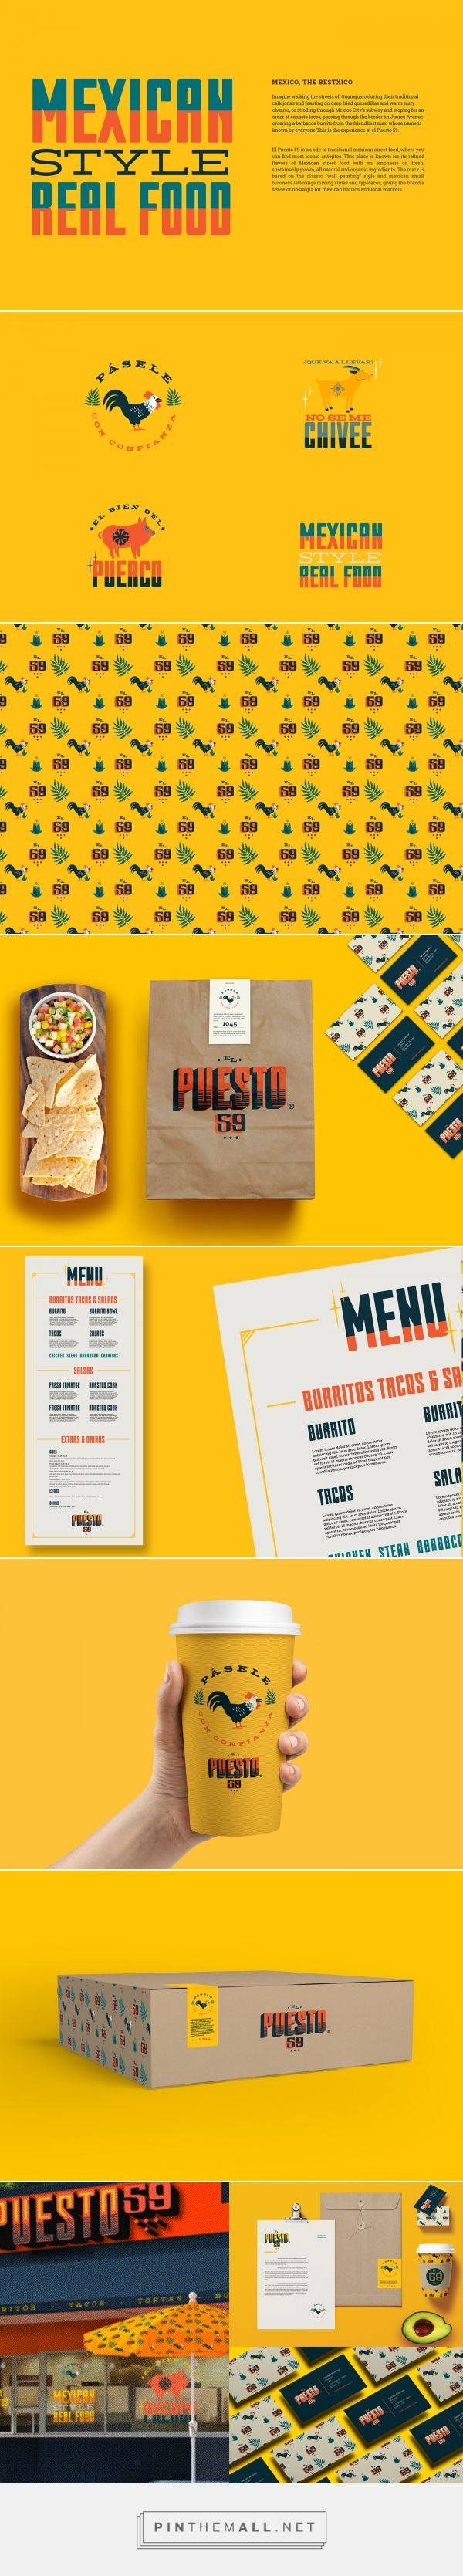 Pásele con confianza Authentic Mexican Street Food Branding by Jaime Espinoza   Fivestar Branding Agency – Design and Branding Agency & Curated Inspiration Gallery